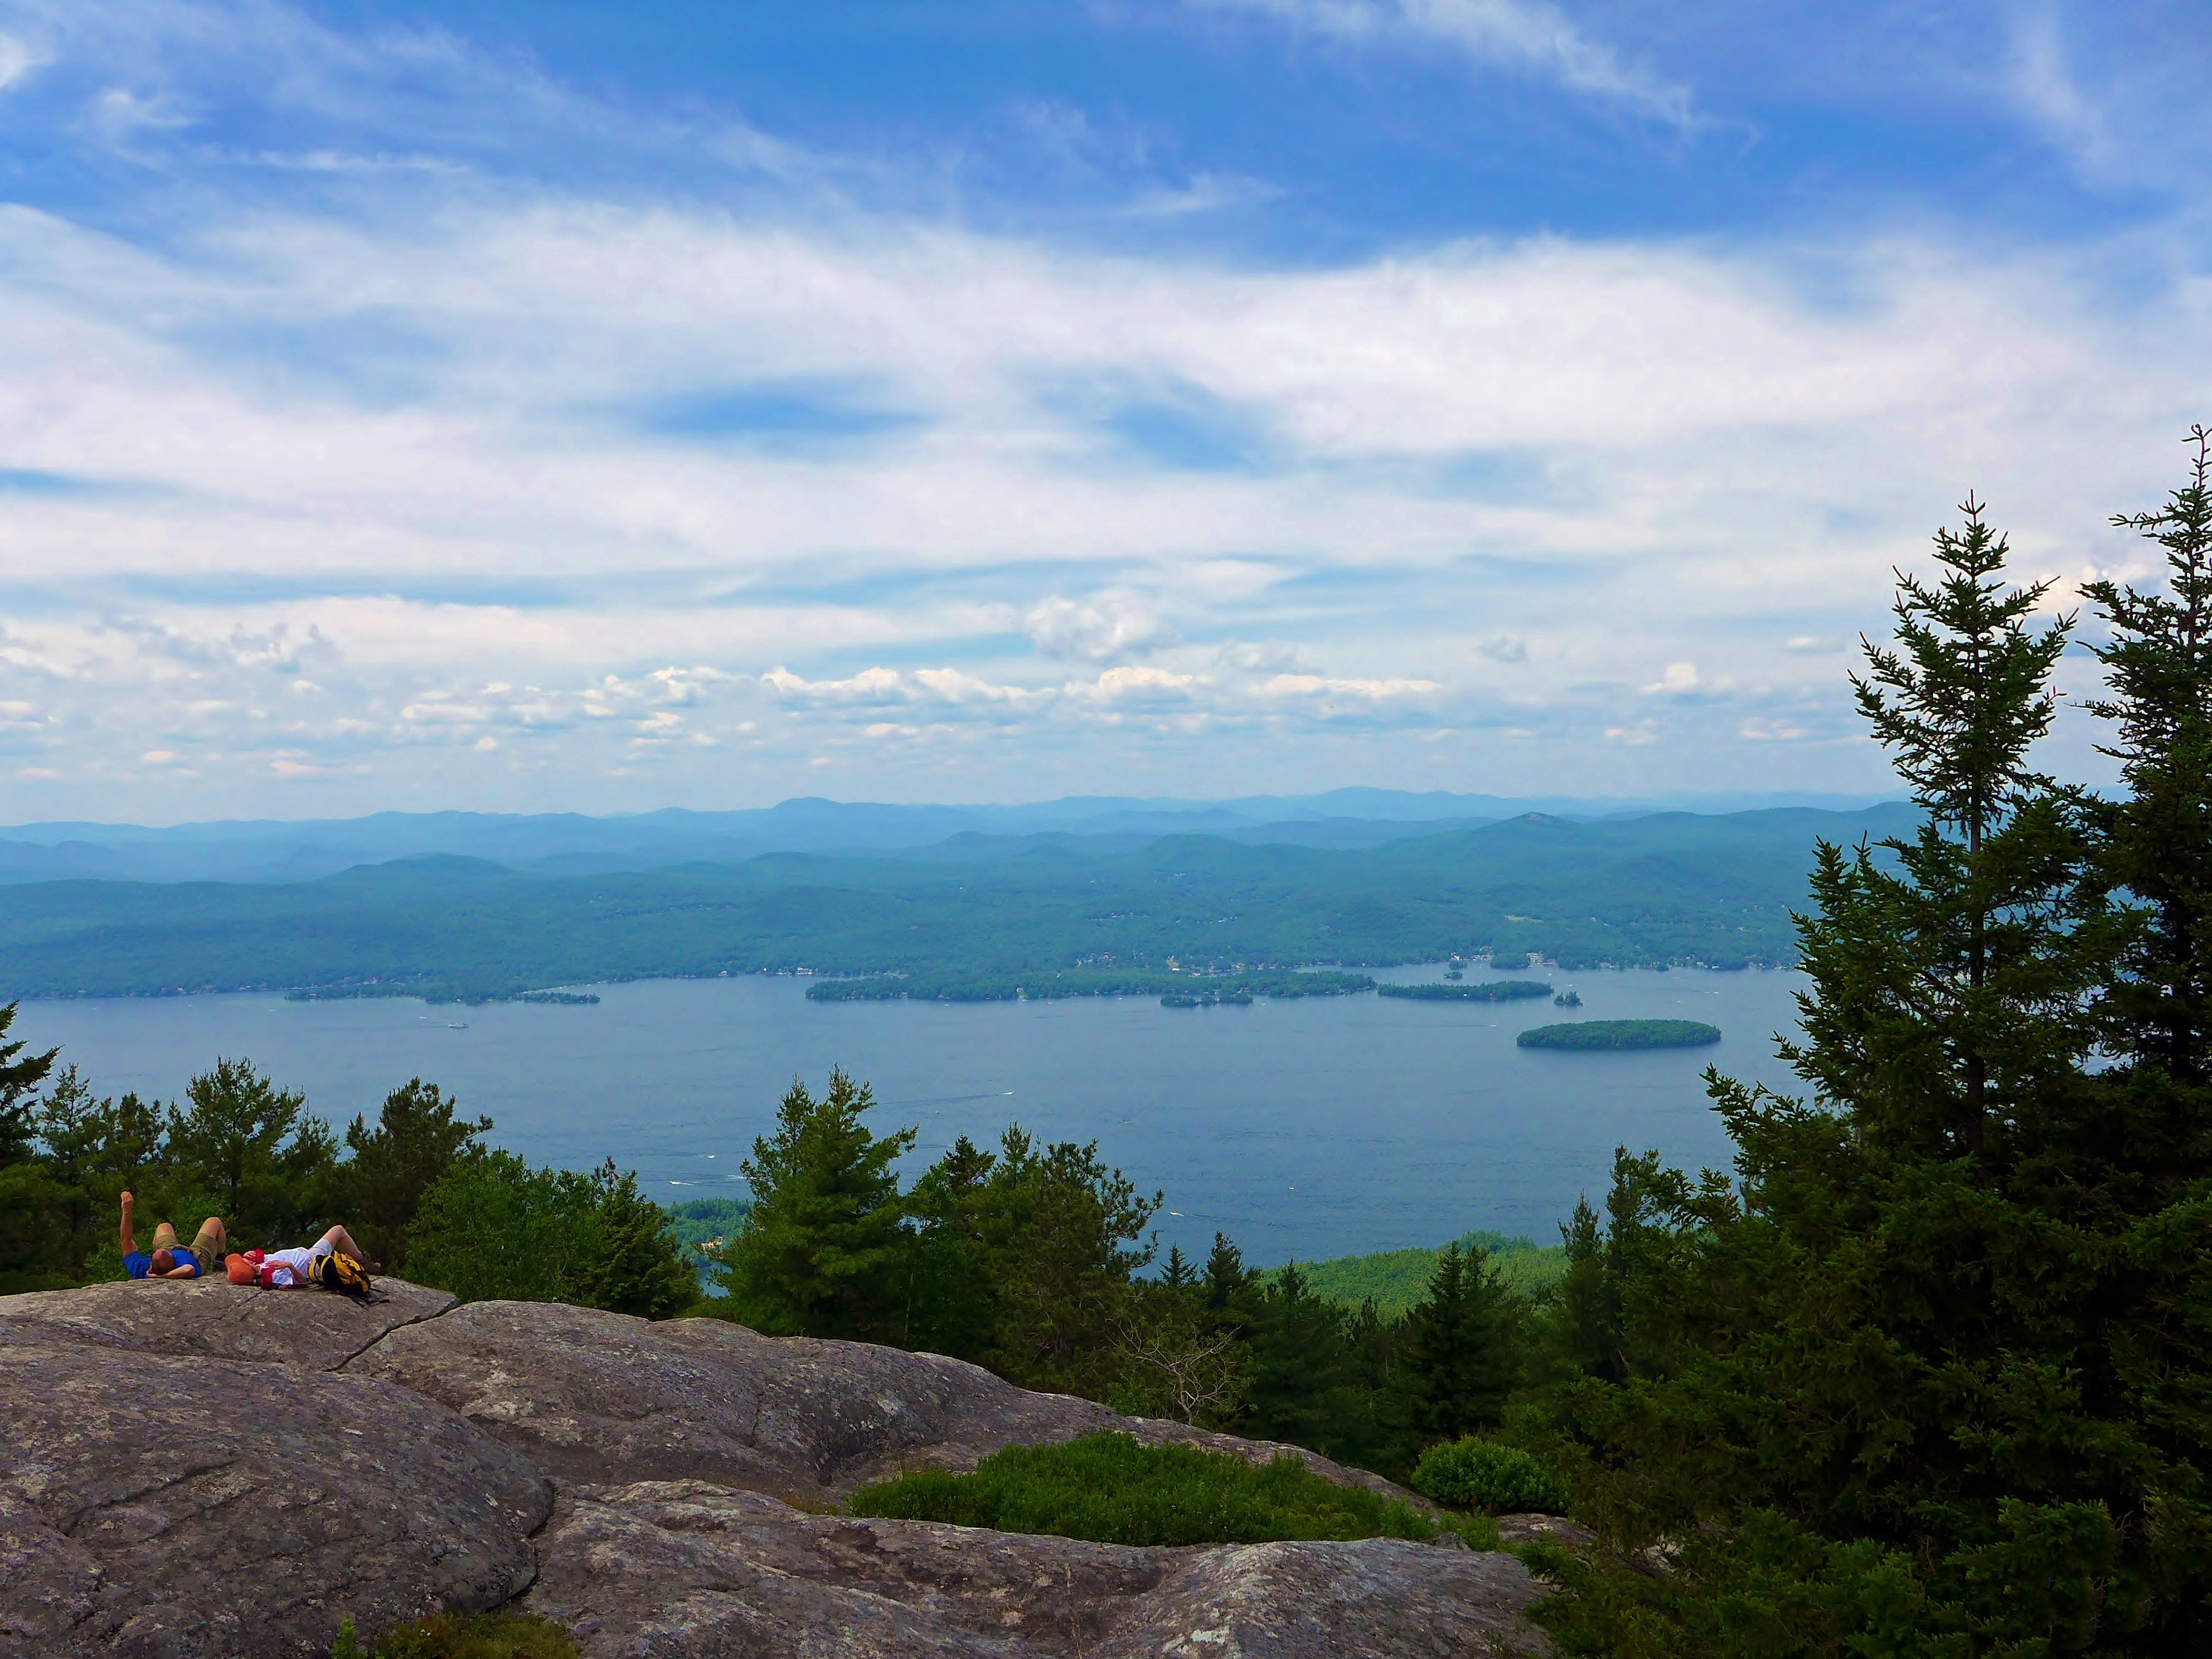 Hikers enjoying the view of Lake George from Buck Mountain - E. King, June 2014